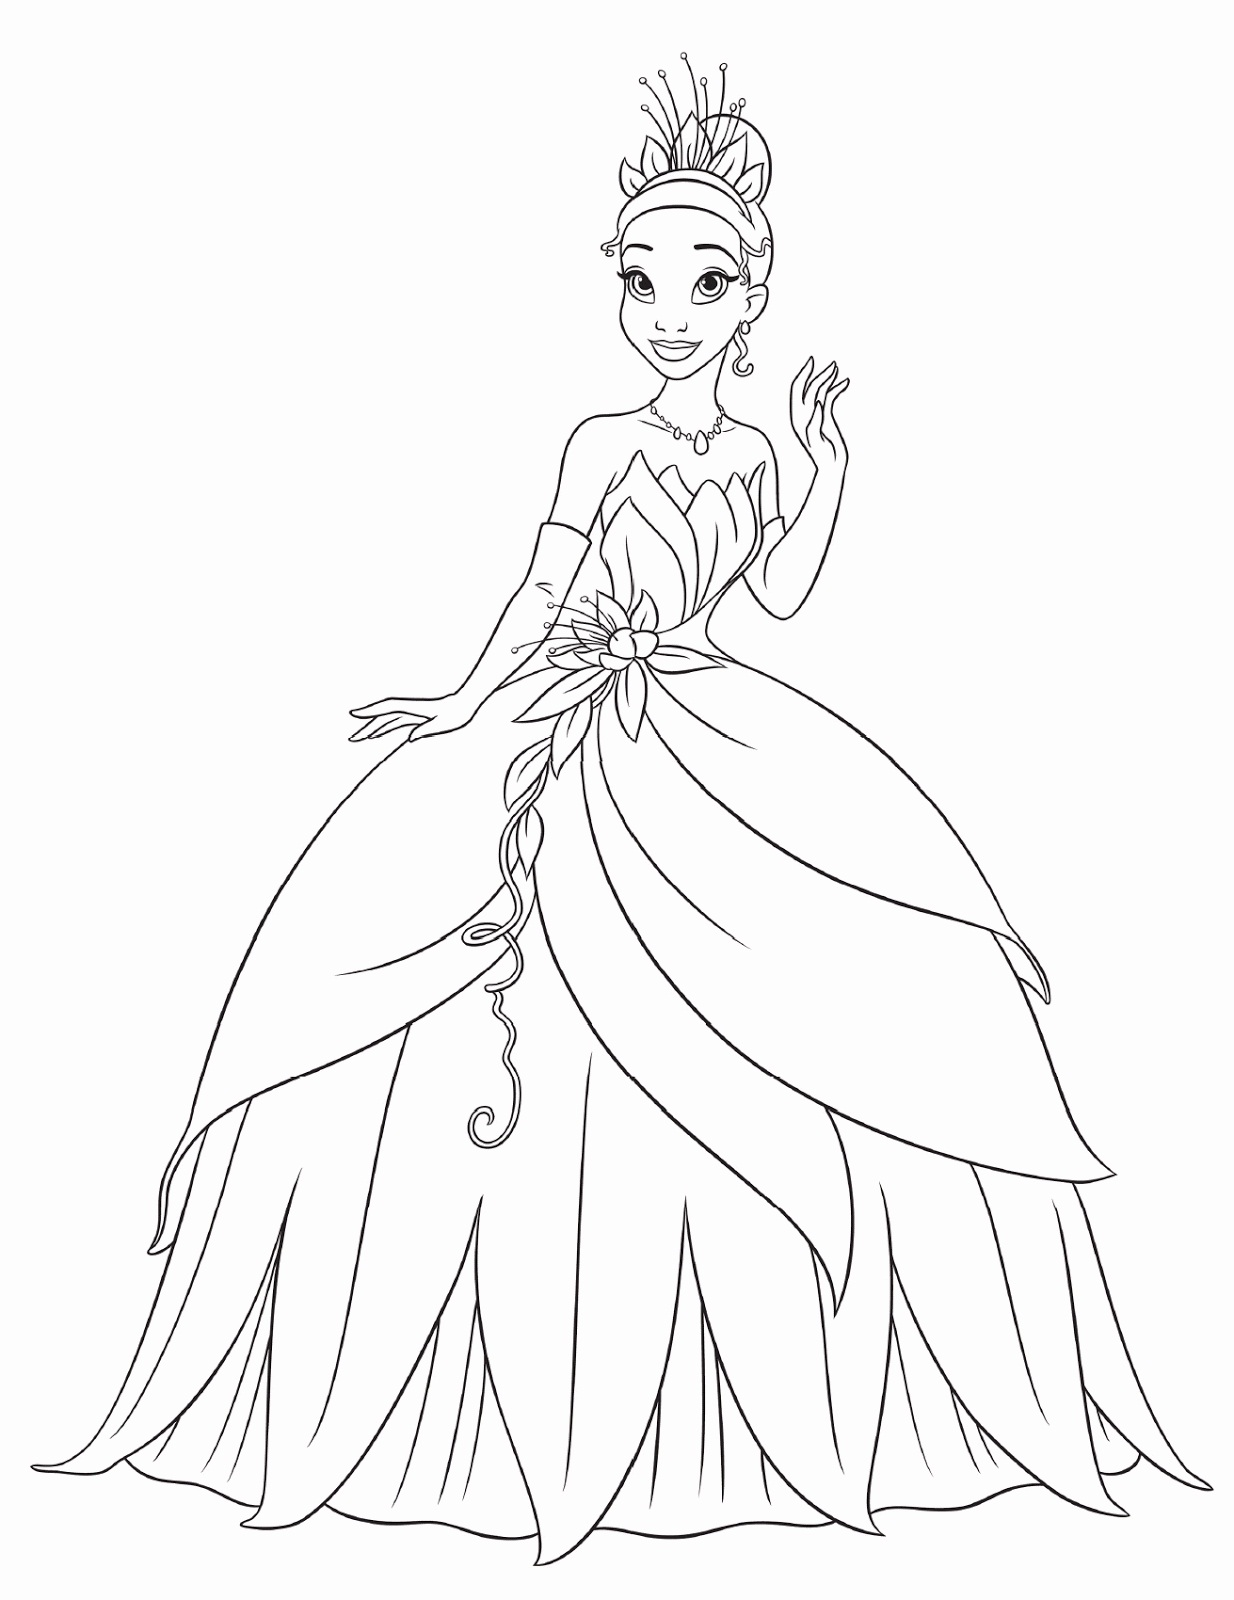 Free Printable Princess Tiana Coloring Pages For Kids Princess Printables